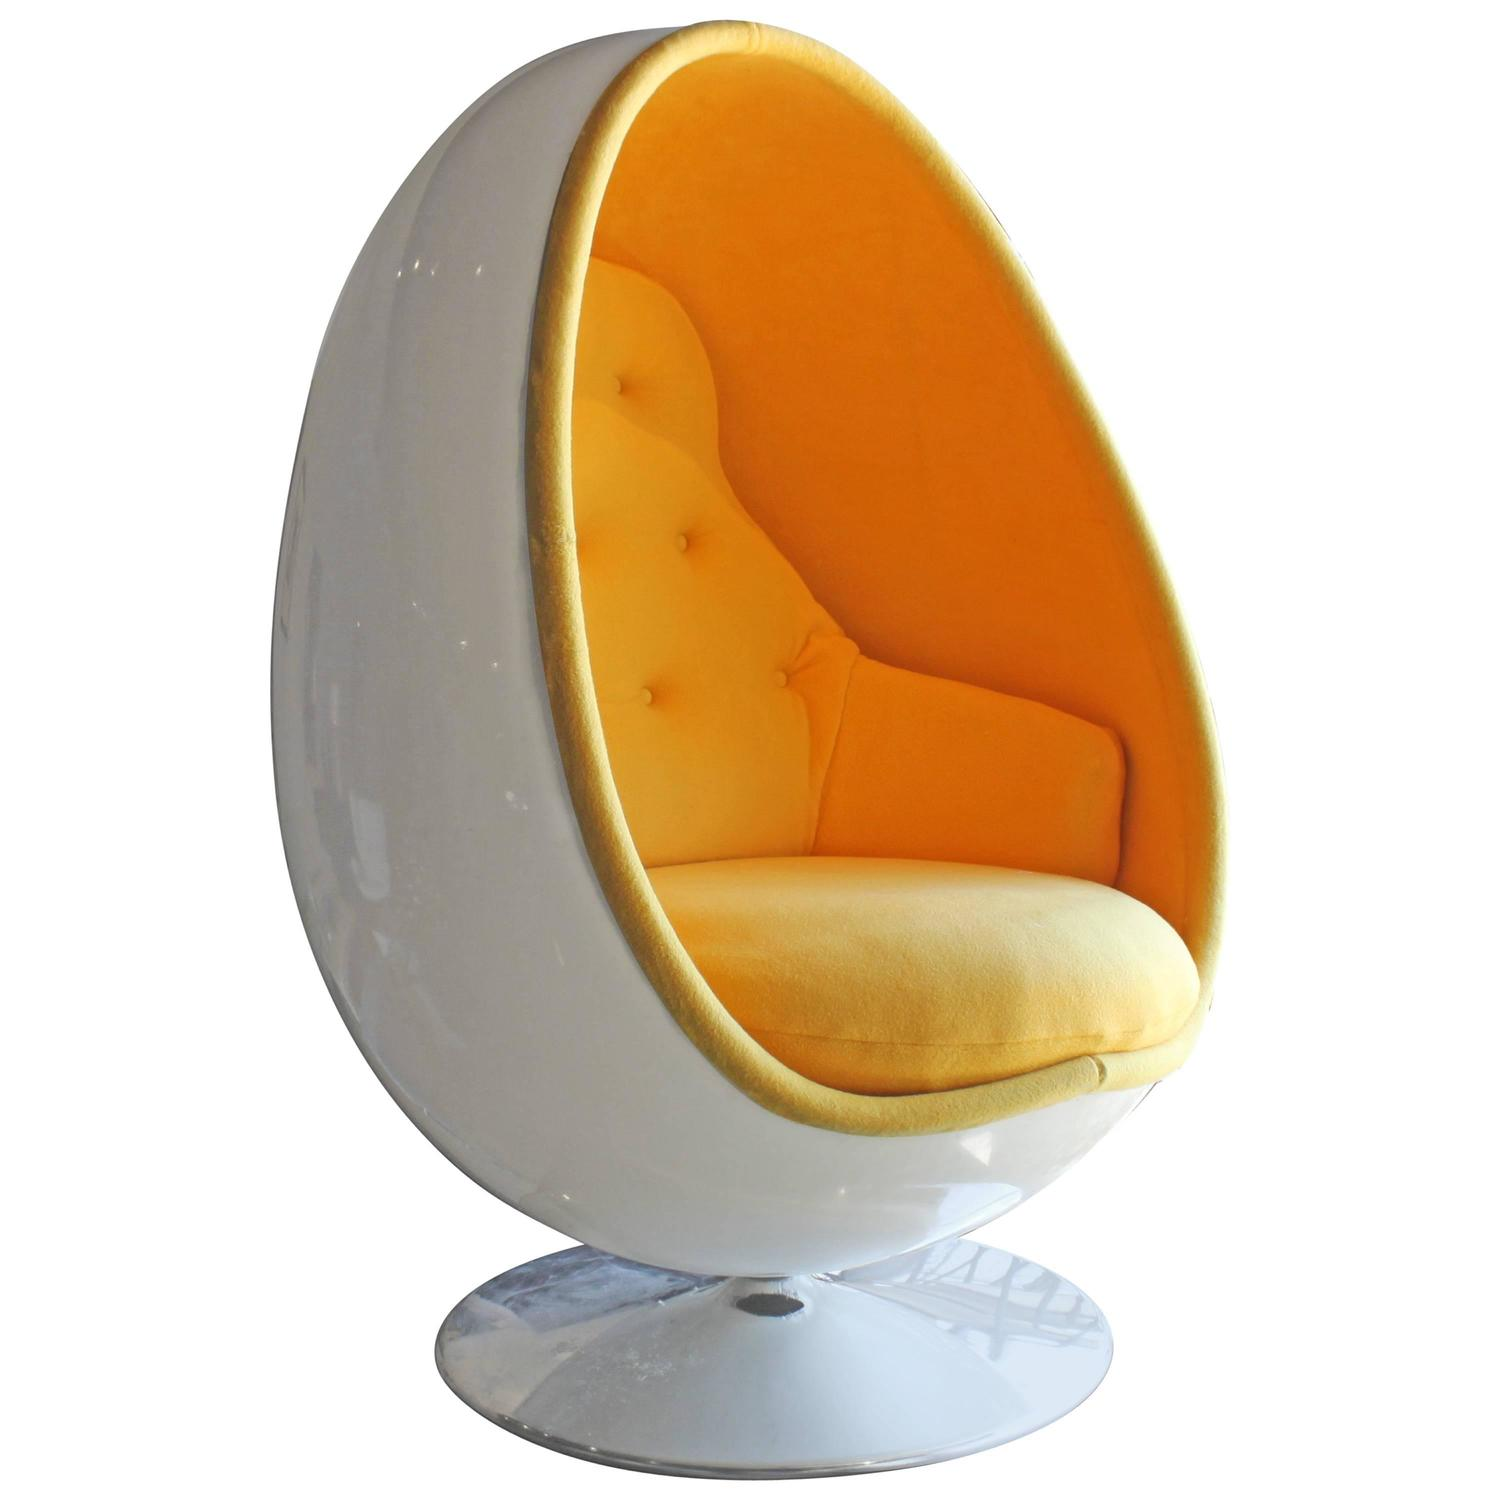 Ovalia Egg Chair By Thor Larsen